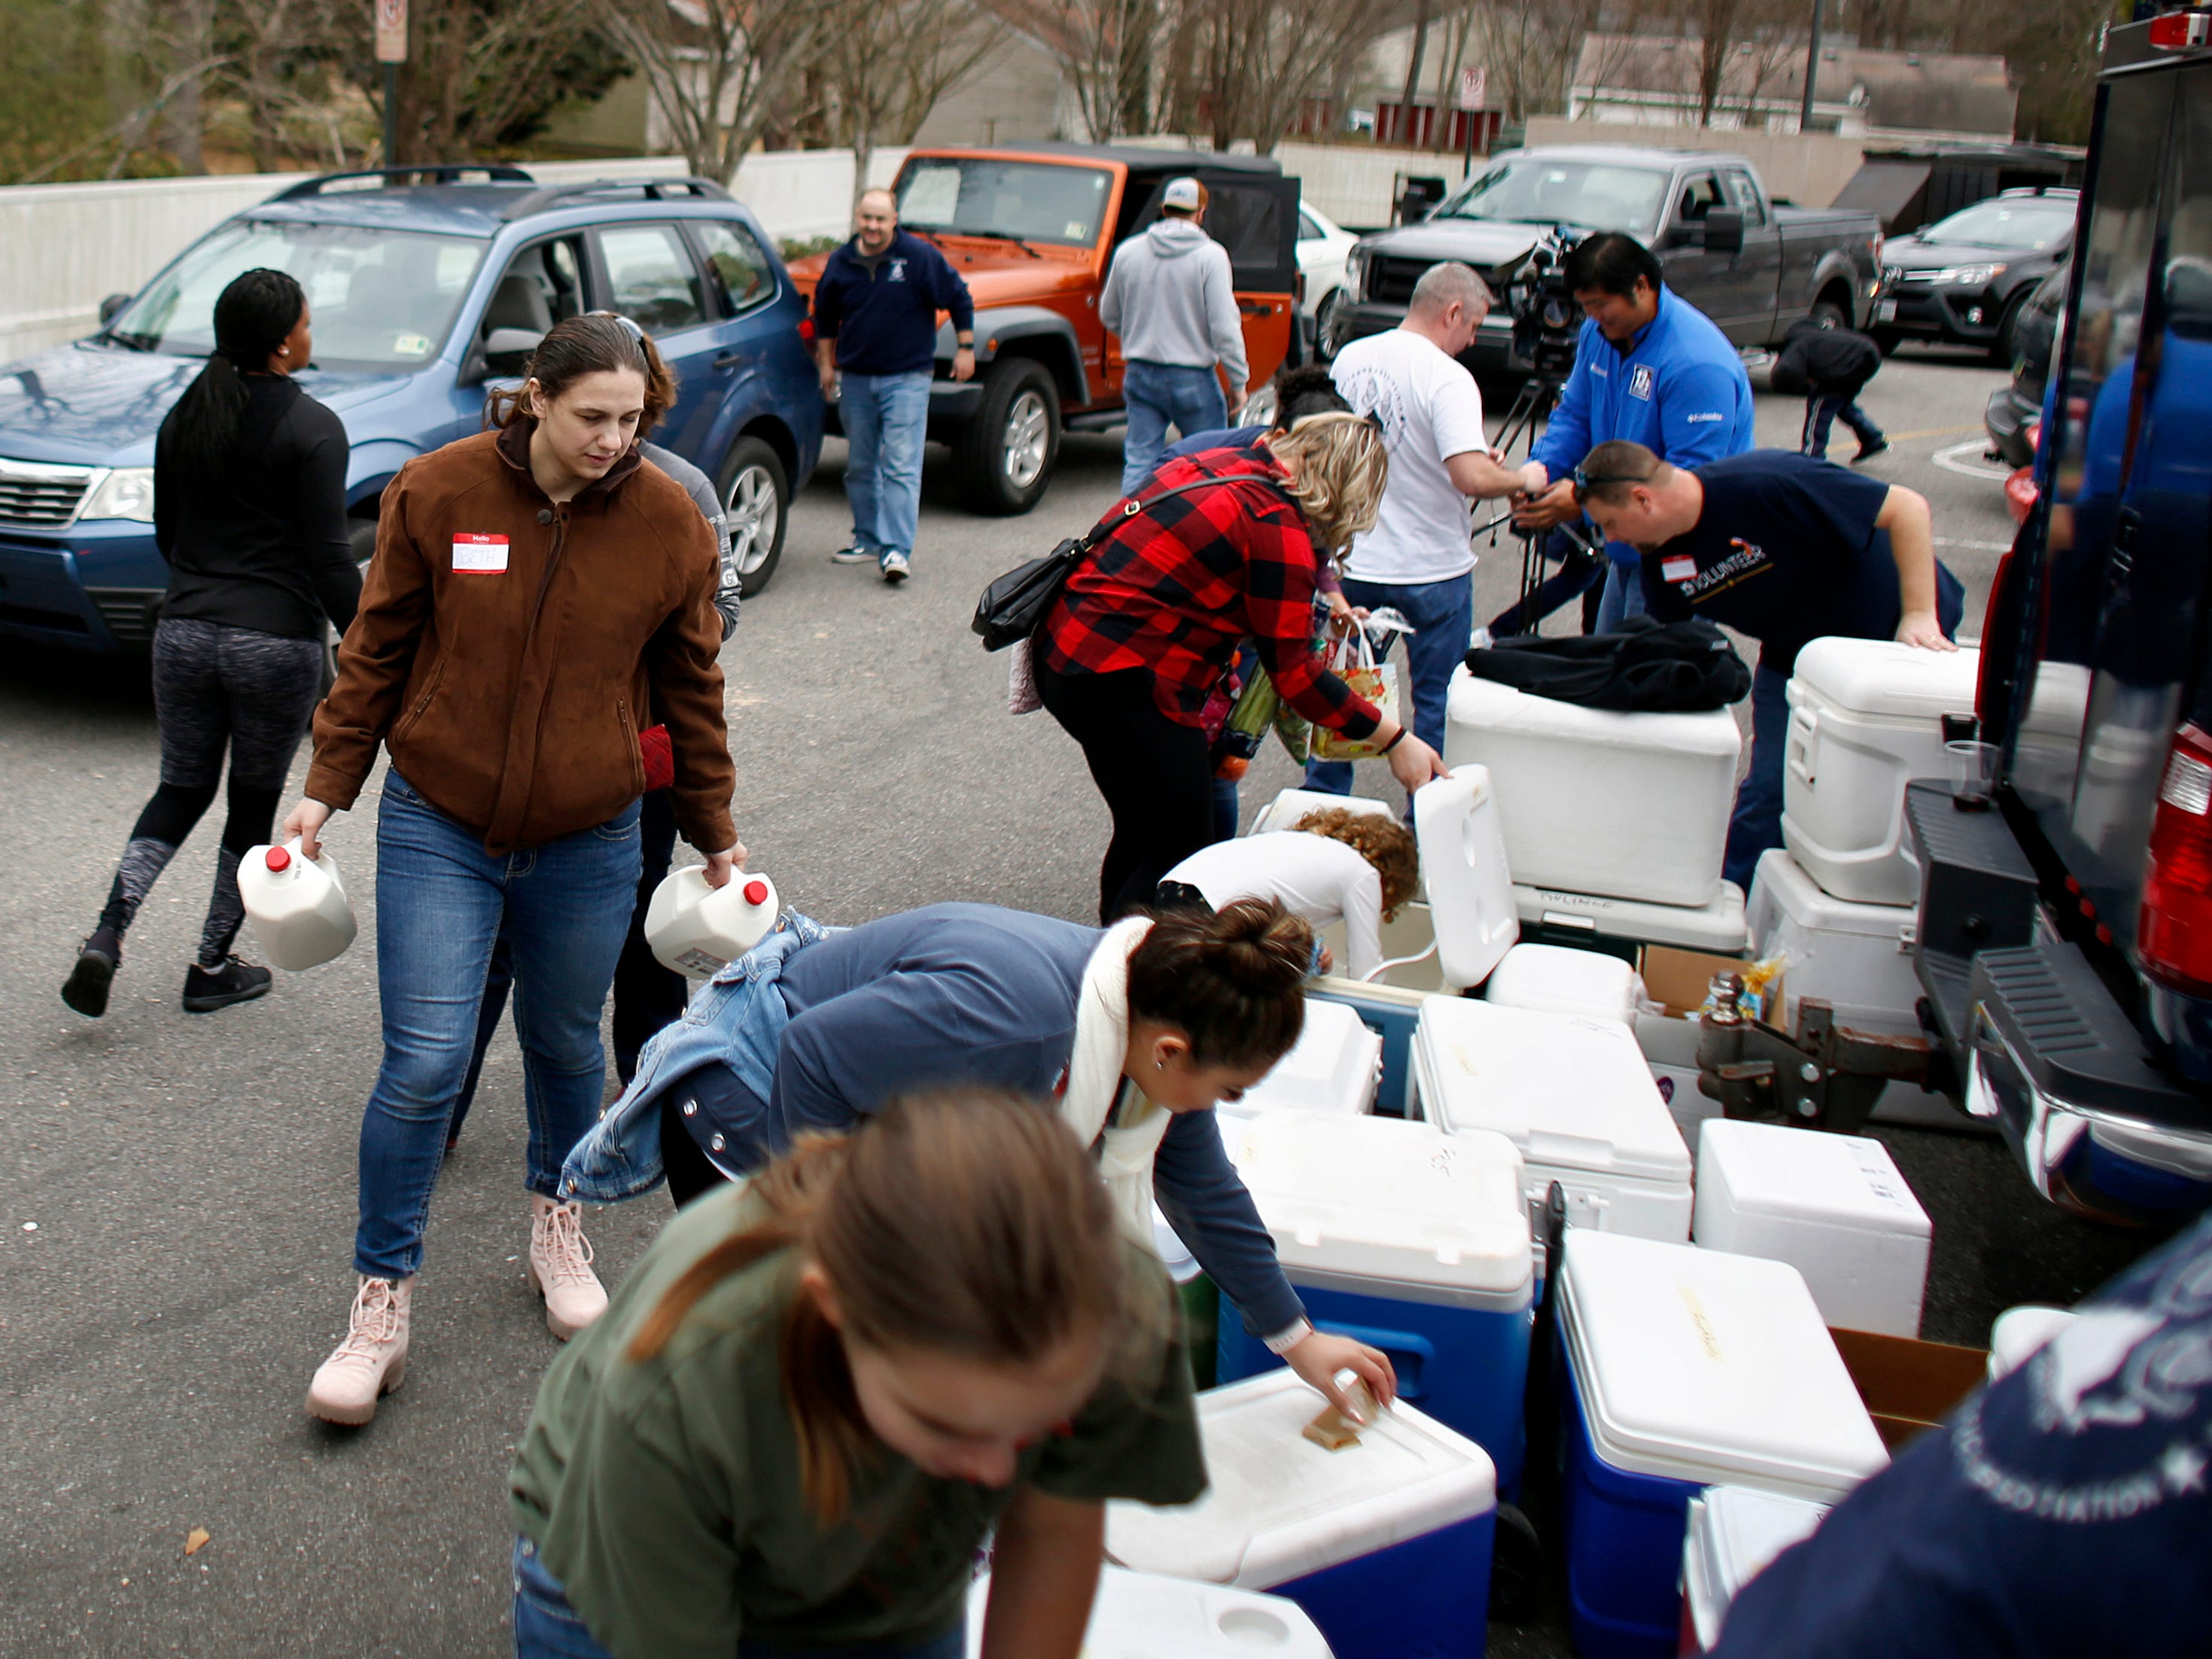 Hundreds of volunteers and recipients Saturday, Jan. 19, 2019 at Help for Hampton Roads Coast Guard Families food drive, sponsored by the Chief Petty Officer Association, in Chesapeake for families affected by the shutdown. (Stephen M. Katz/The Virginian-Pilot via AP) ORG XMIT: VANOV105